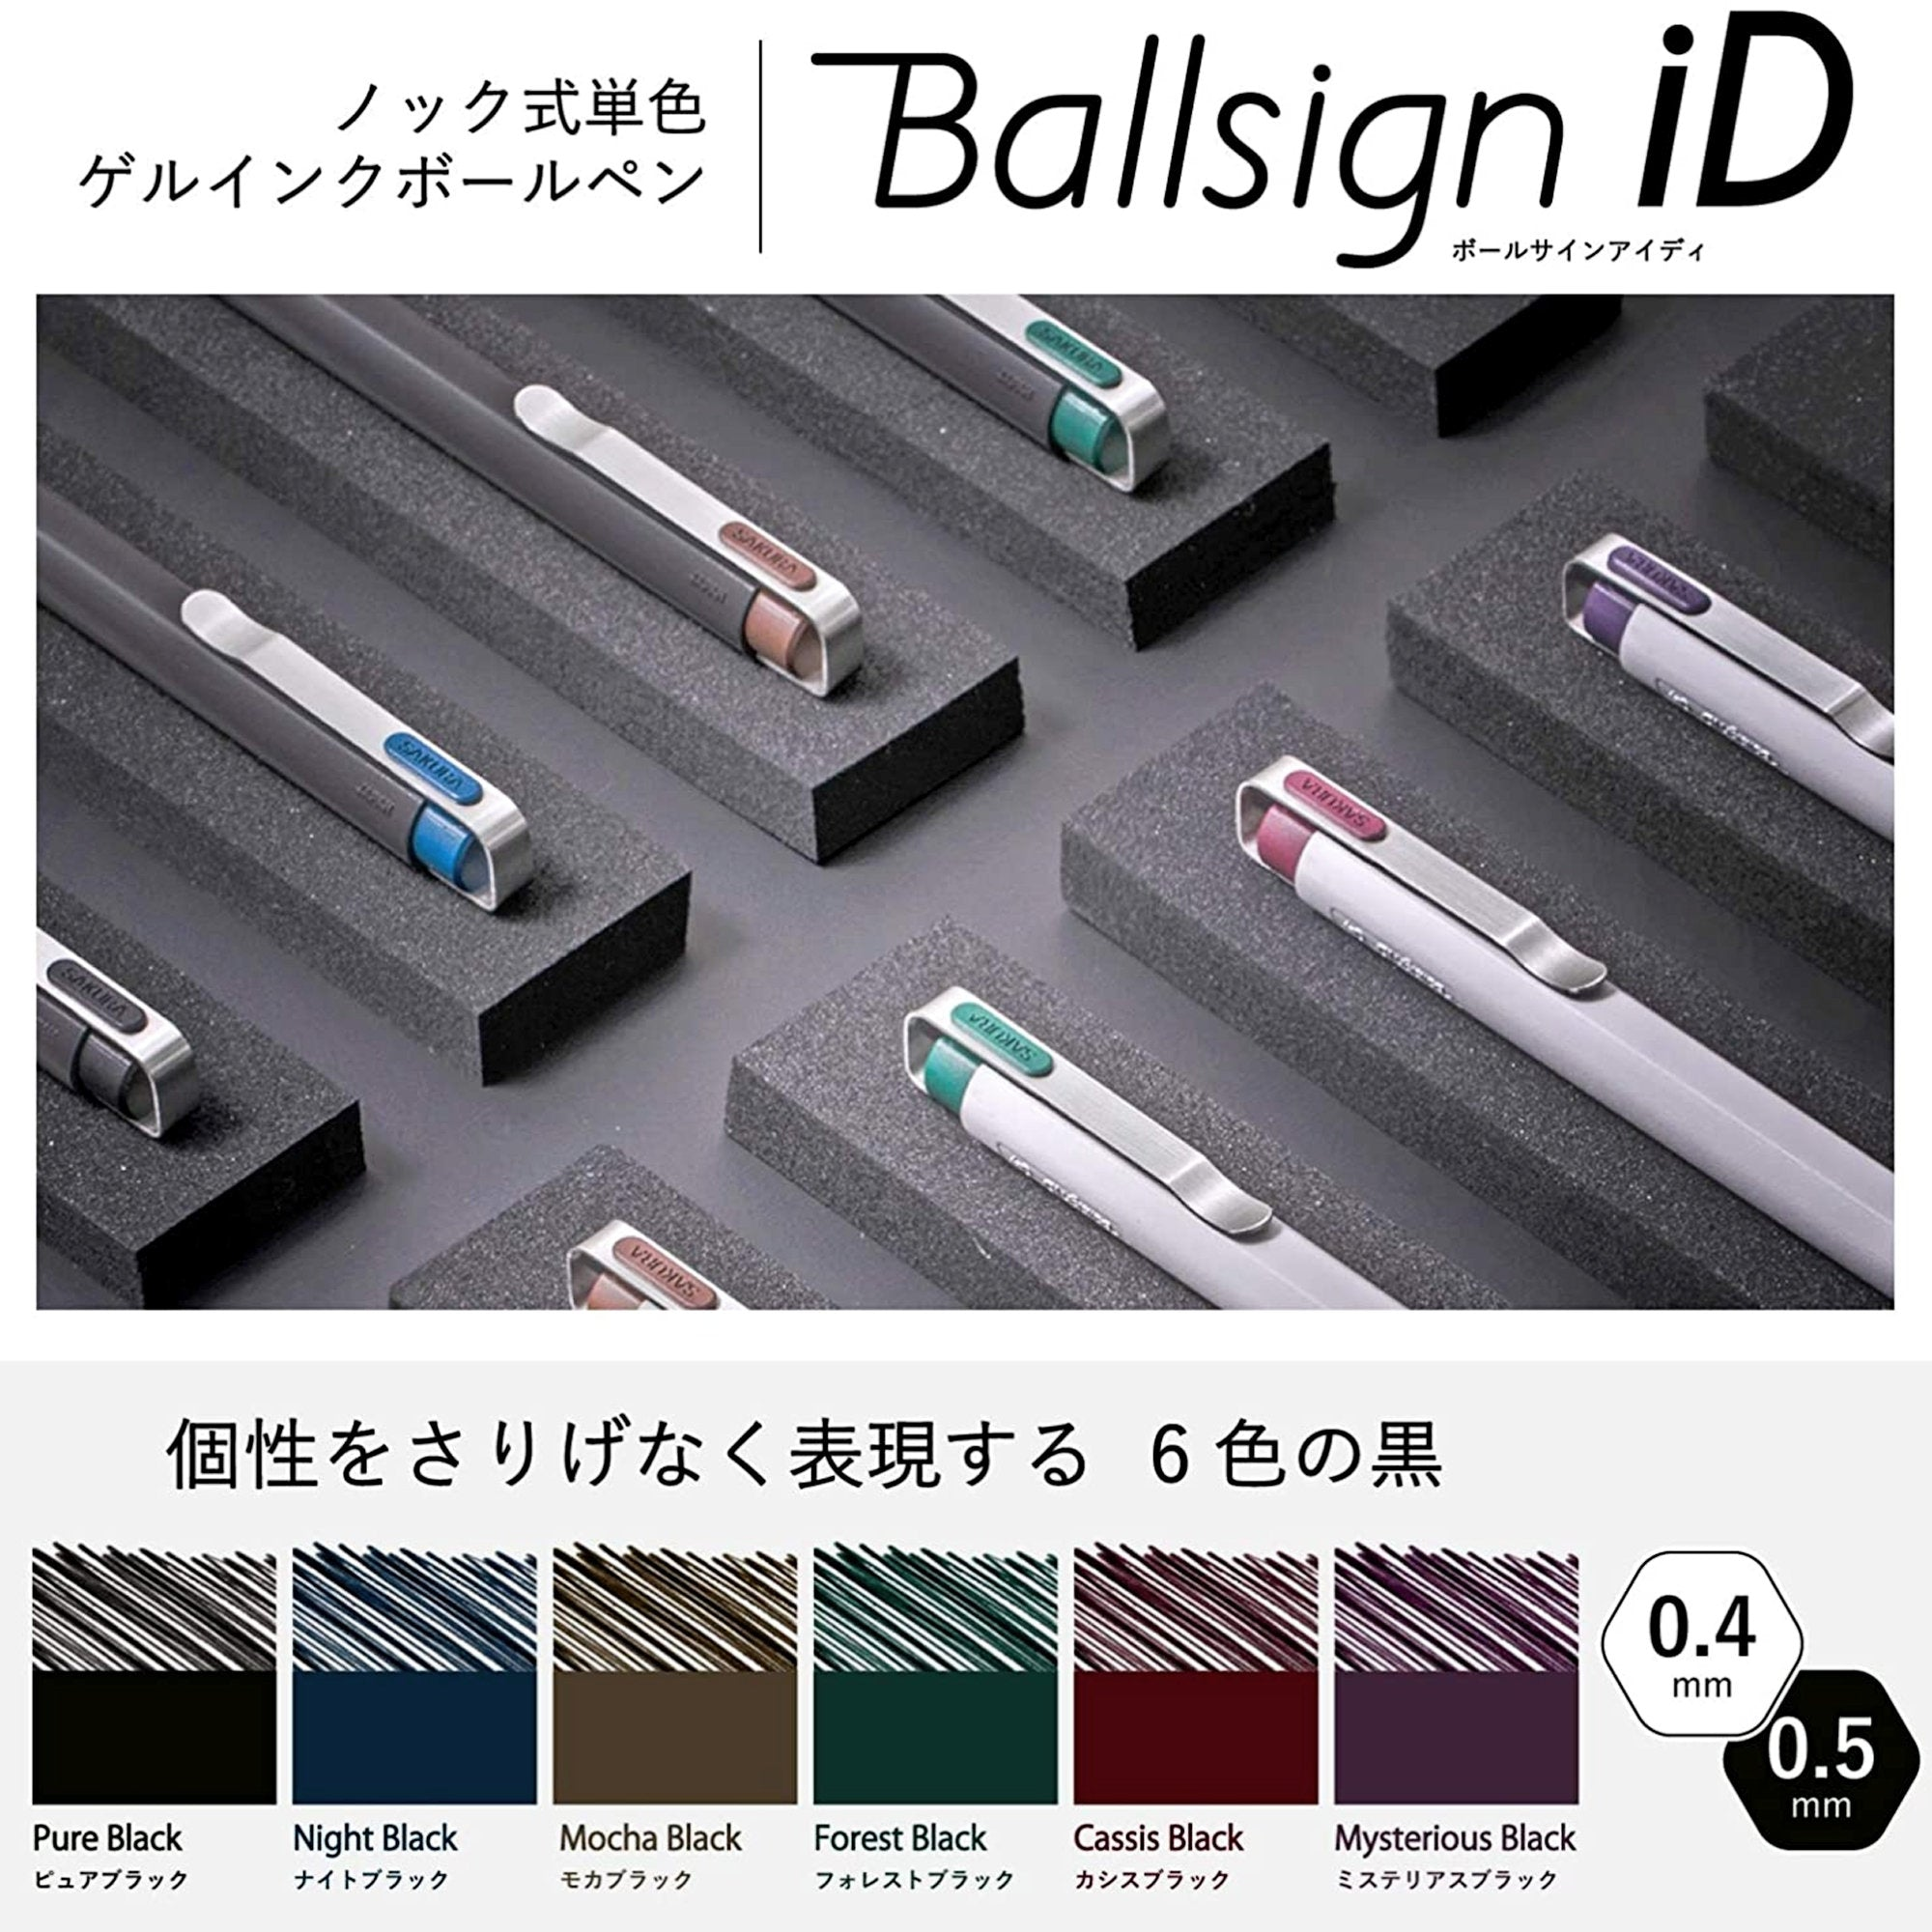 Sakura Craypas Knock FOREST BLACK 0.5mm Gel Ink Ballpoint Pen BallSign iD | GBR205-30 - The Stationery Life!